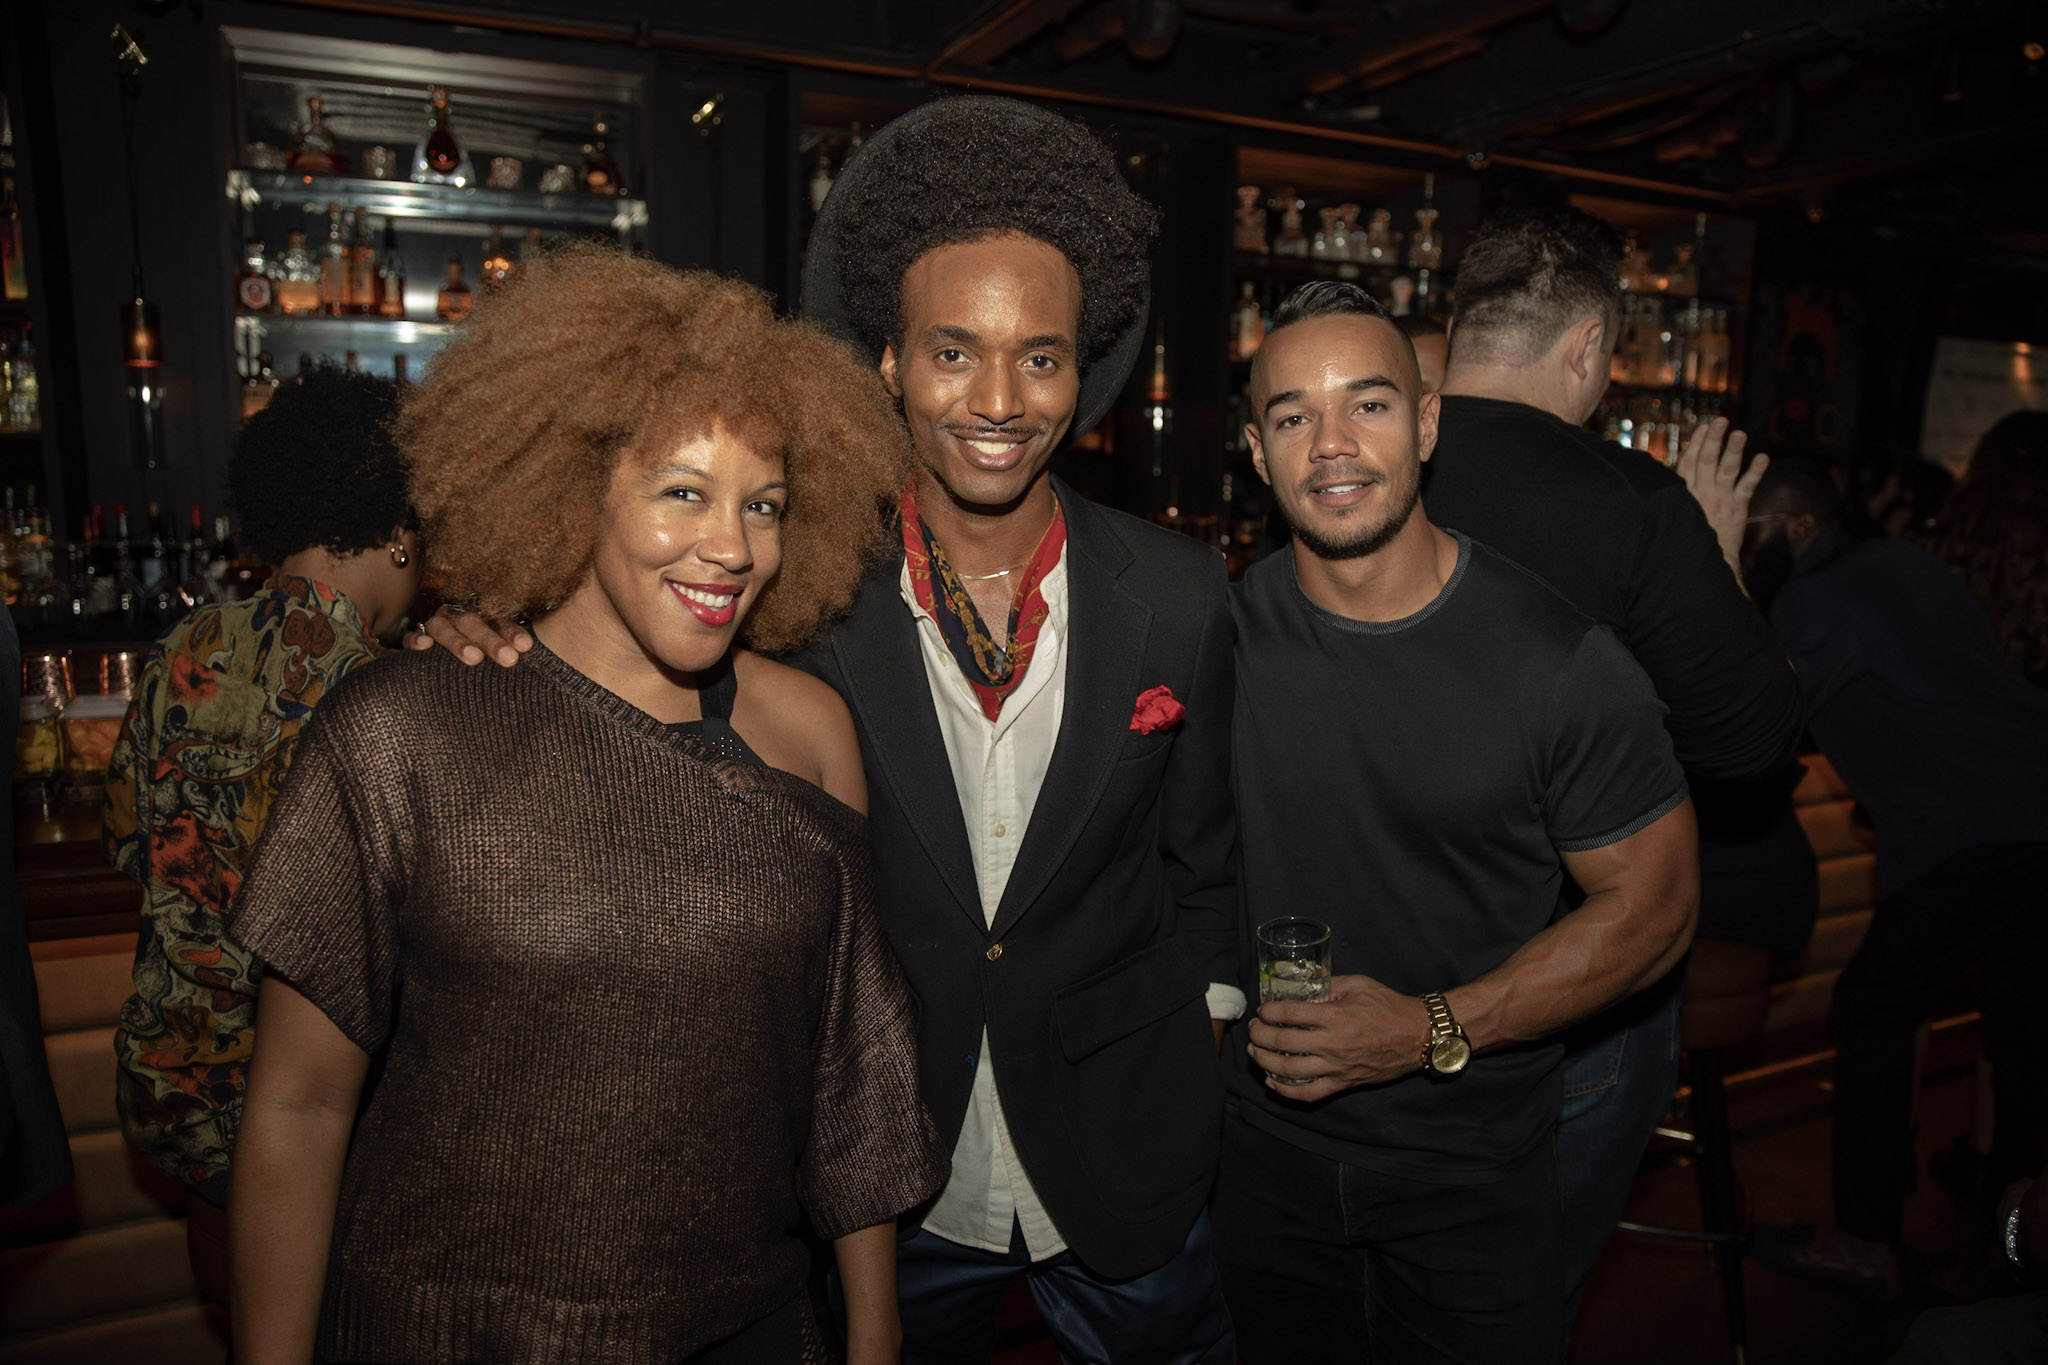 Spirit & Flesh Magazine Jussie Smollett cover event, Tony Triumph by Kenneth de la Torre